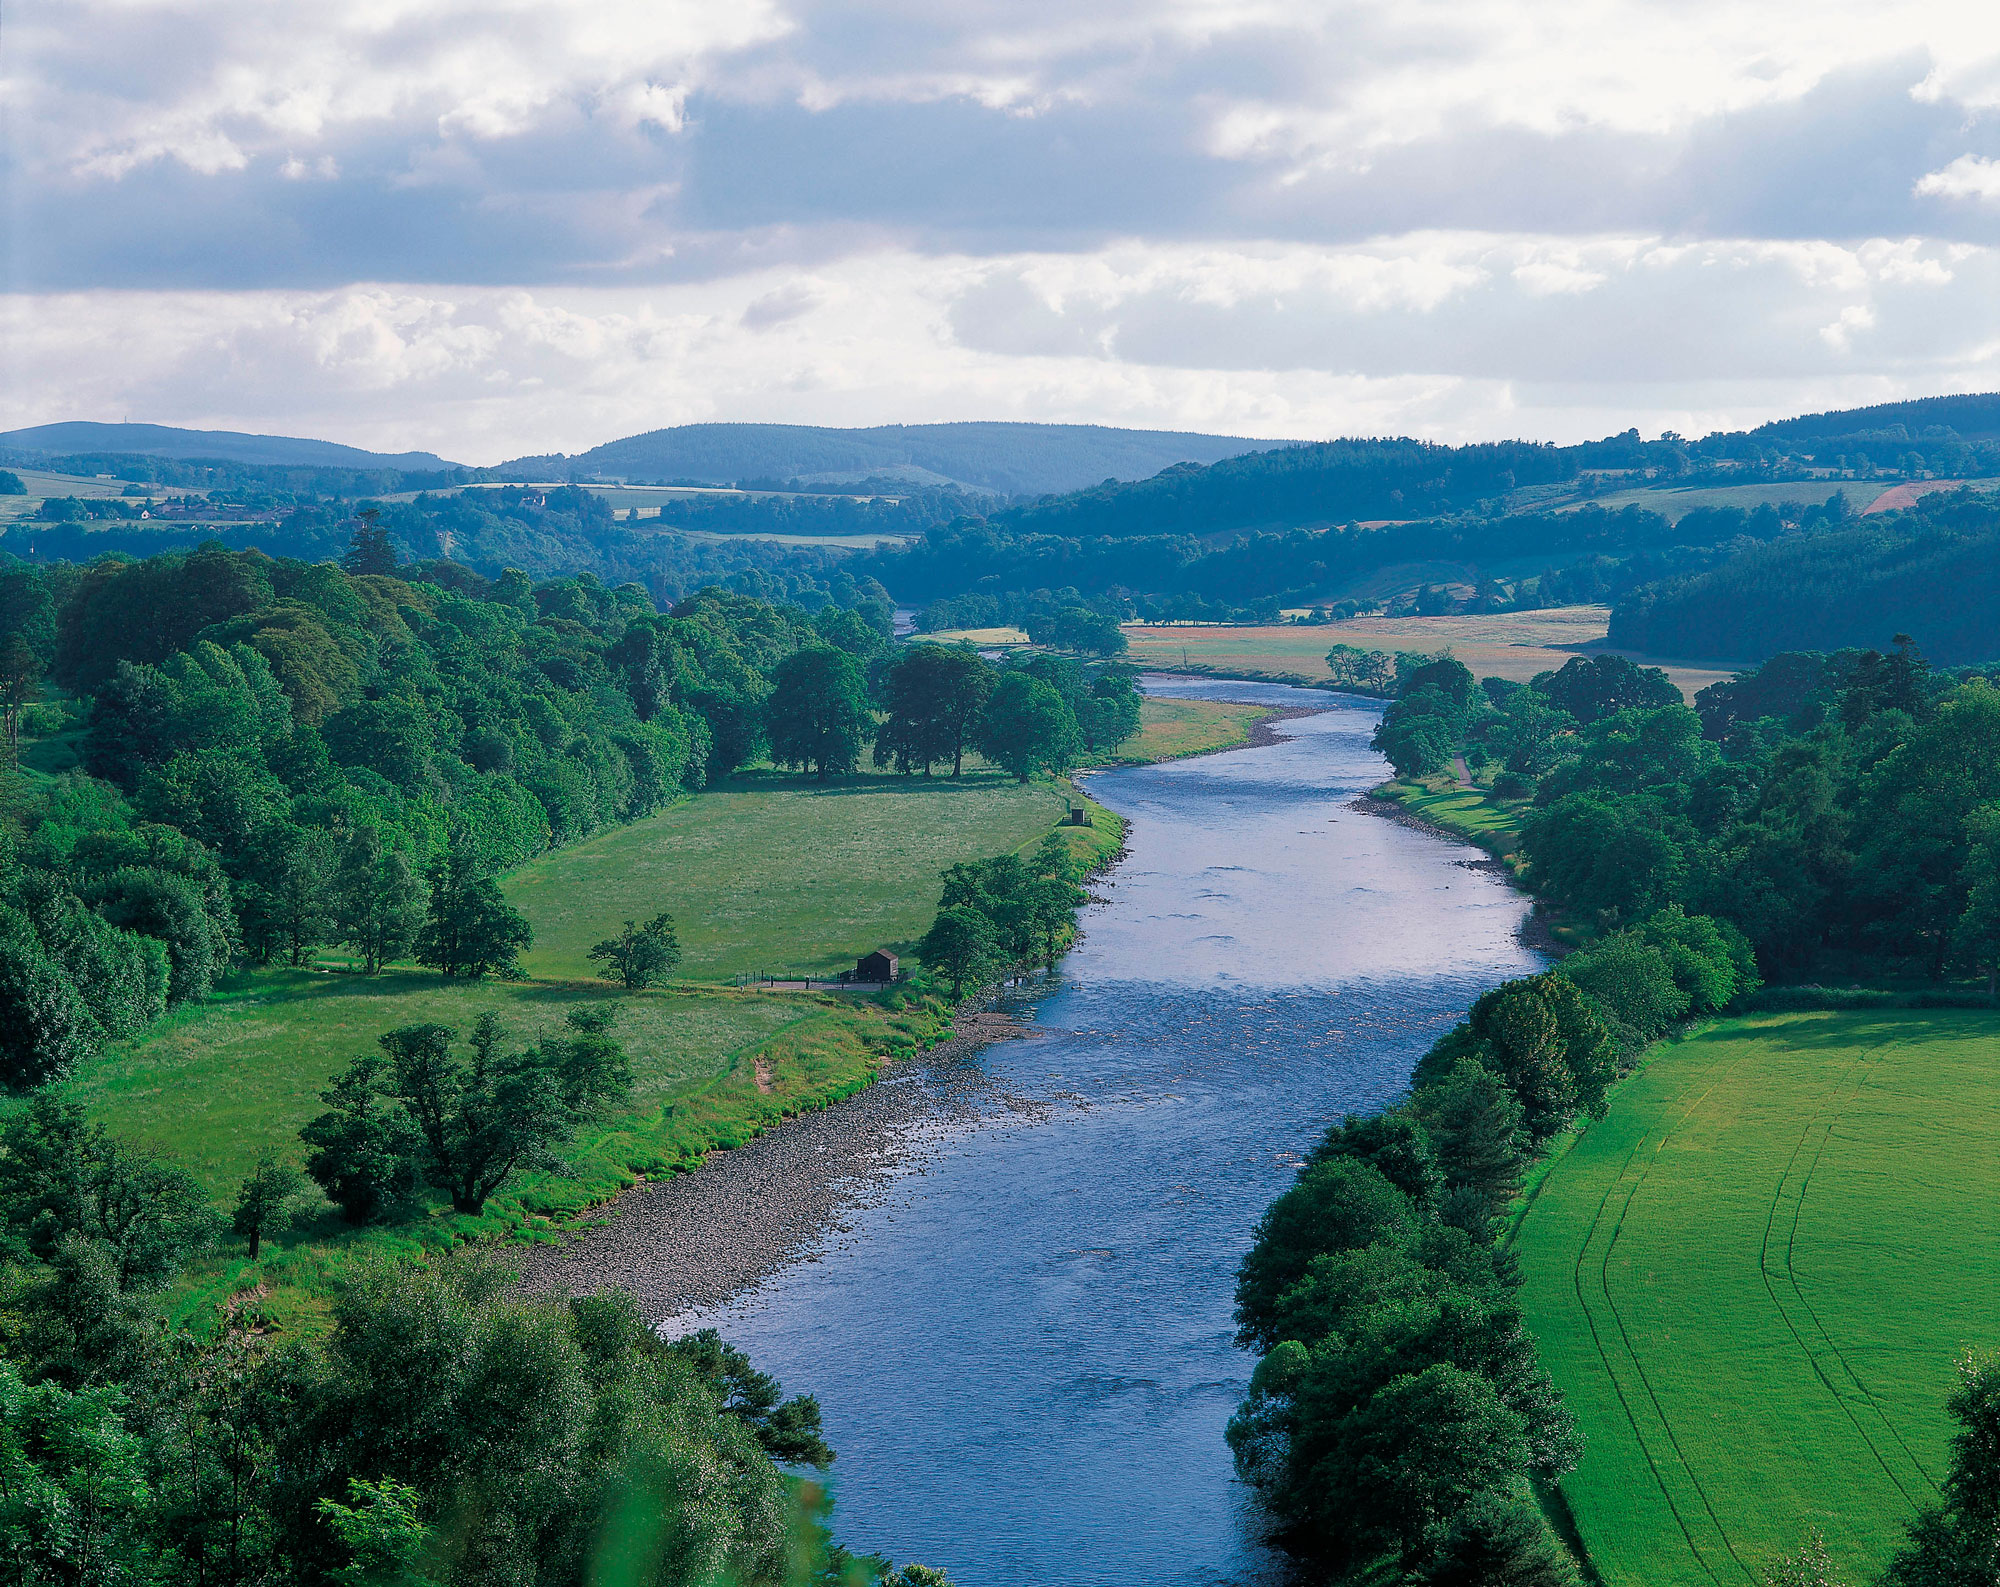 The River Spey at Craigellachie